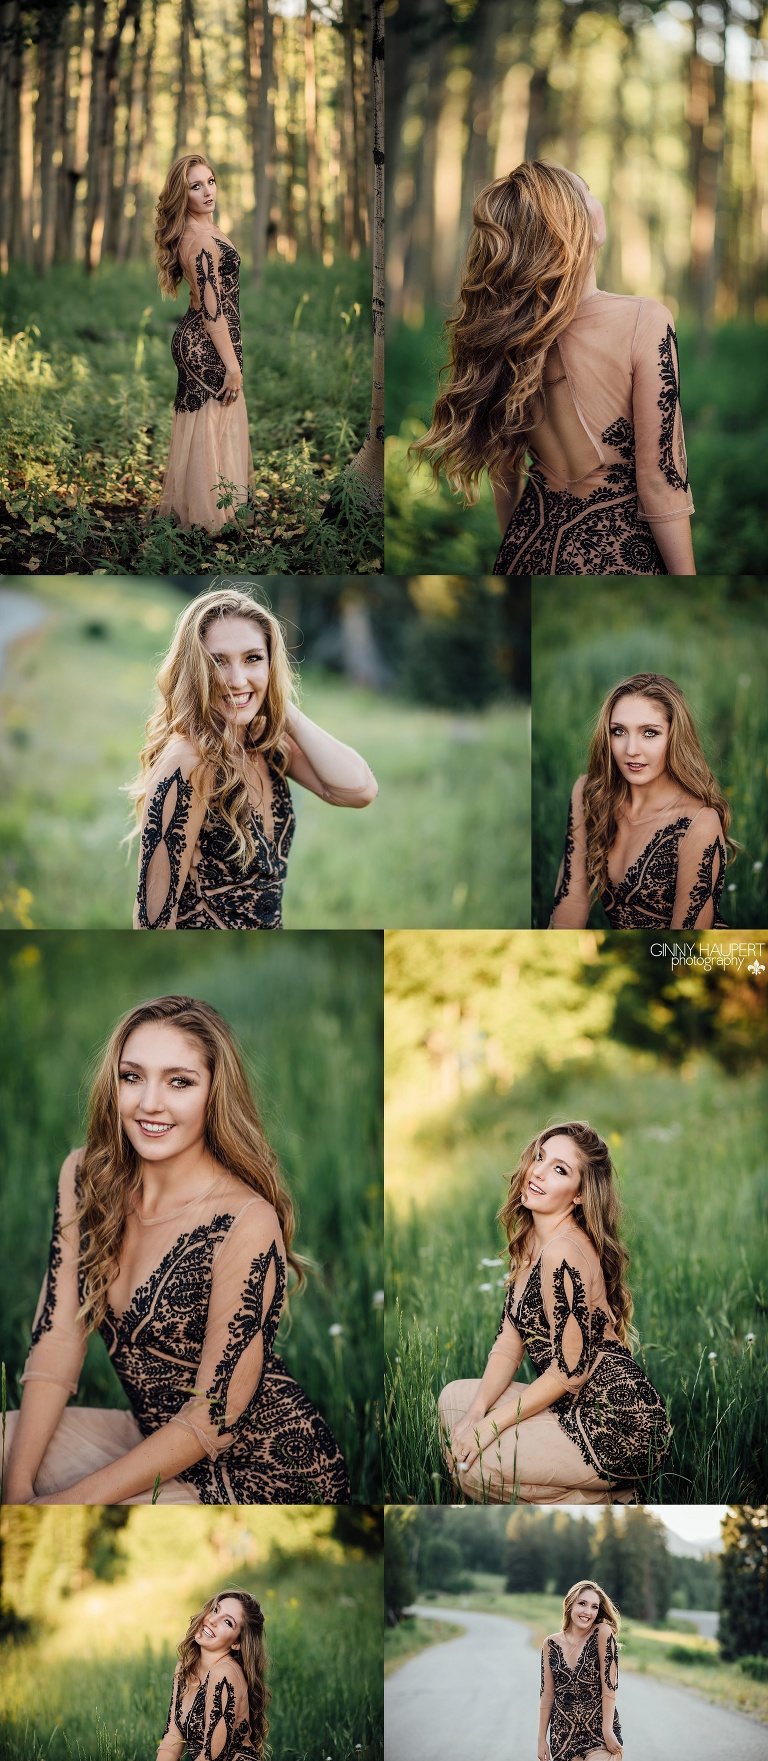 Crested Butte Senior, denver, aurora